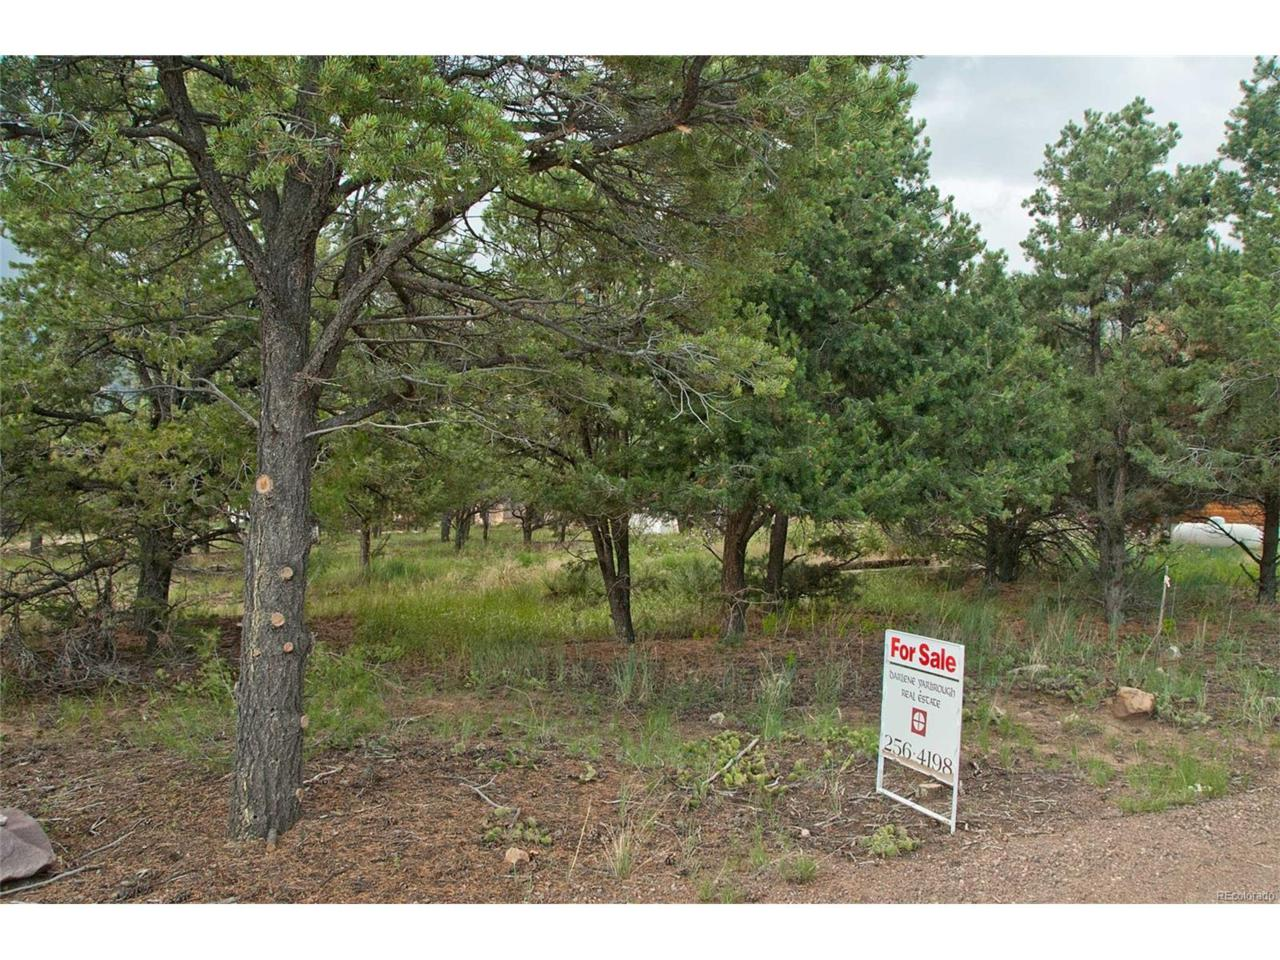 235 S Hemlock Street, Crestone, CO 81131 (MLS #7568805) :: 8z Real Estate